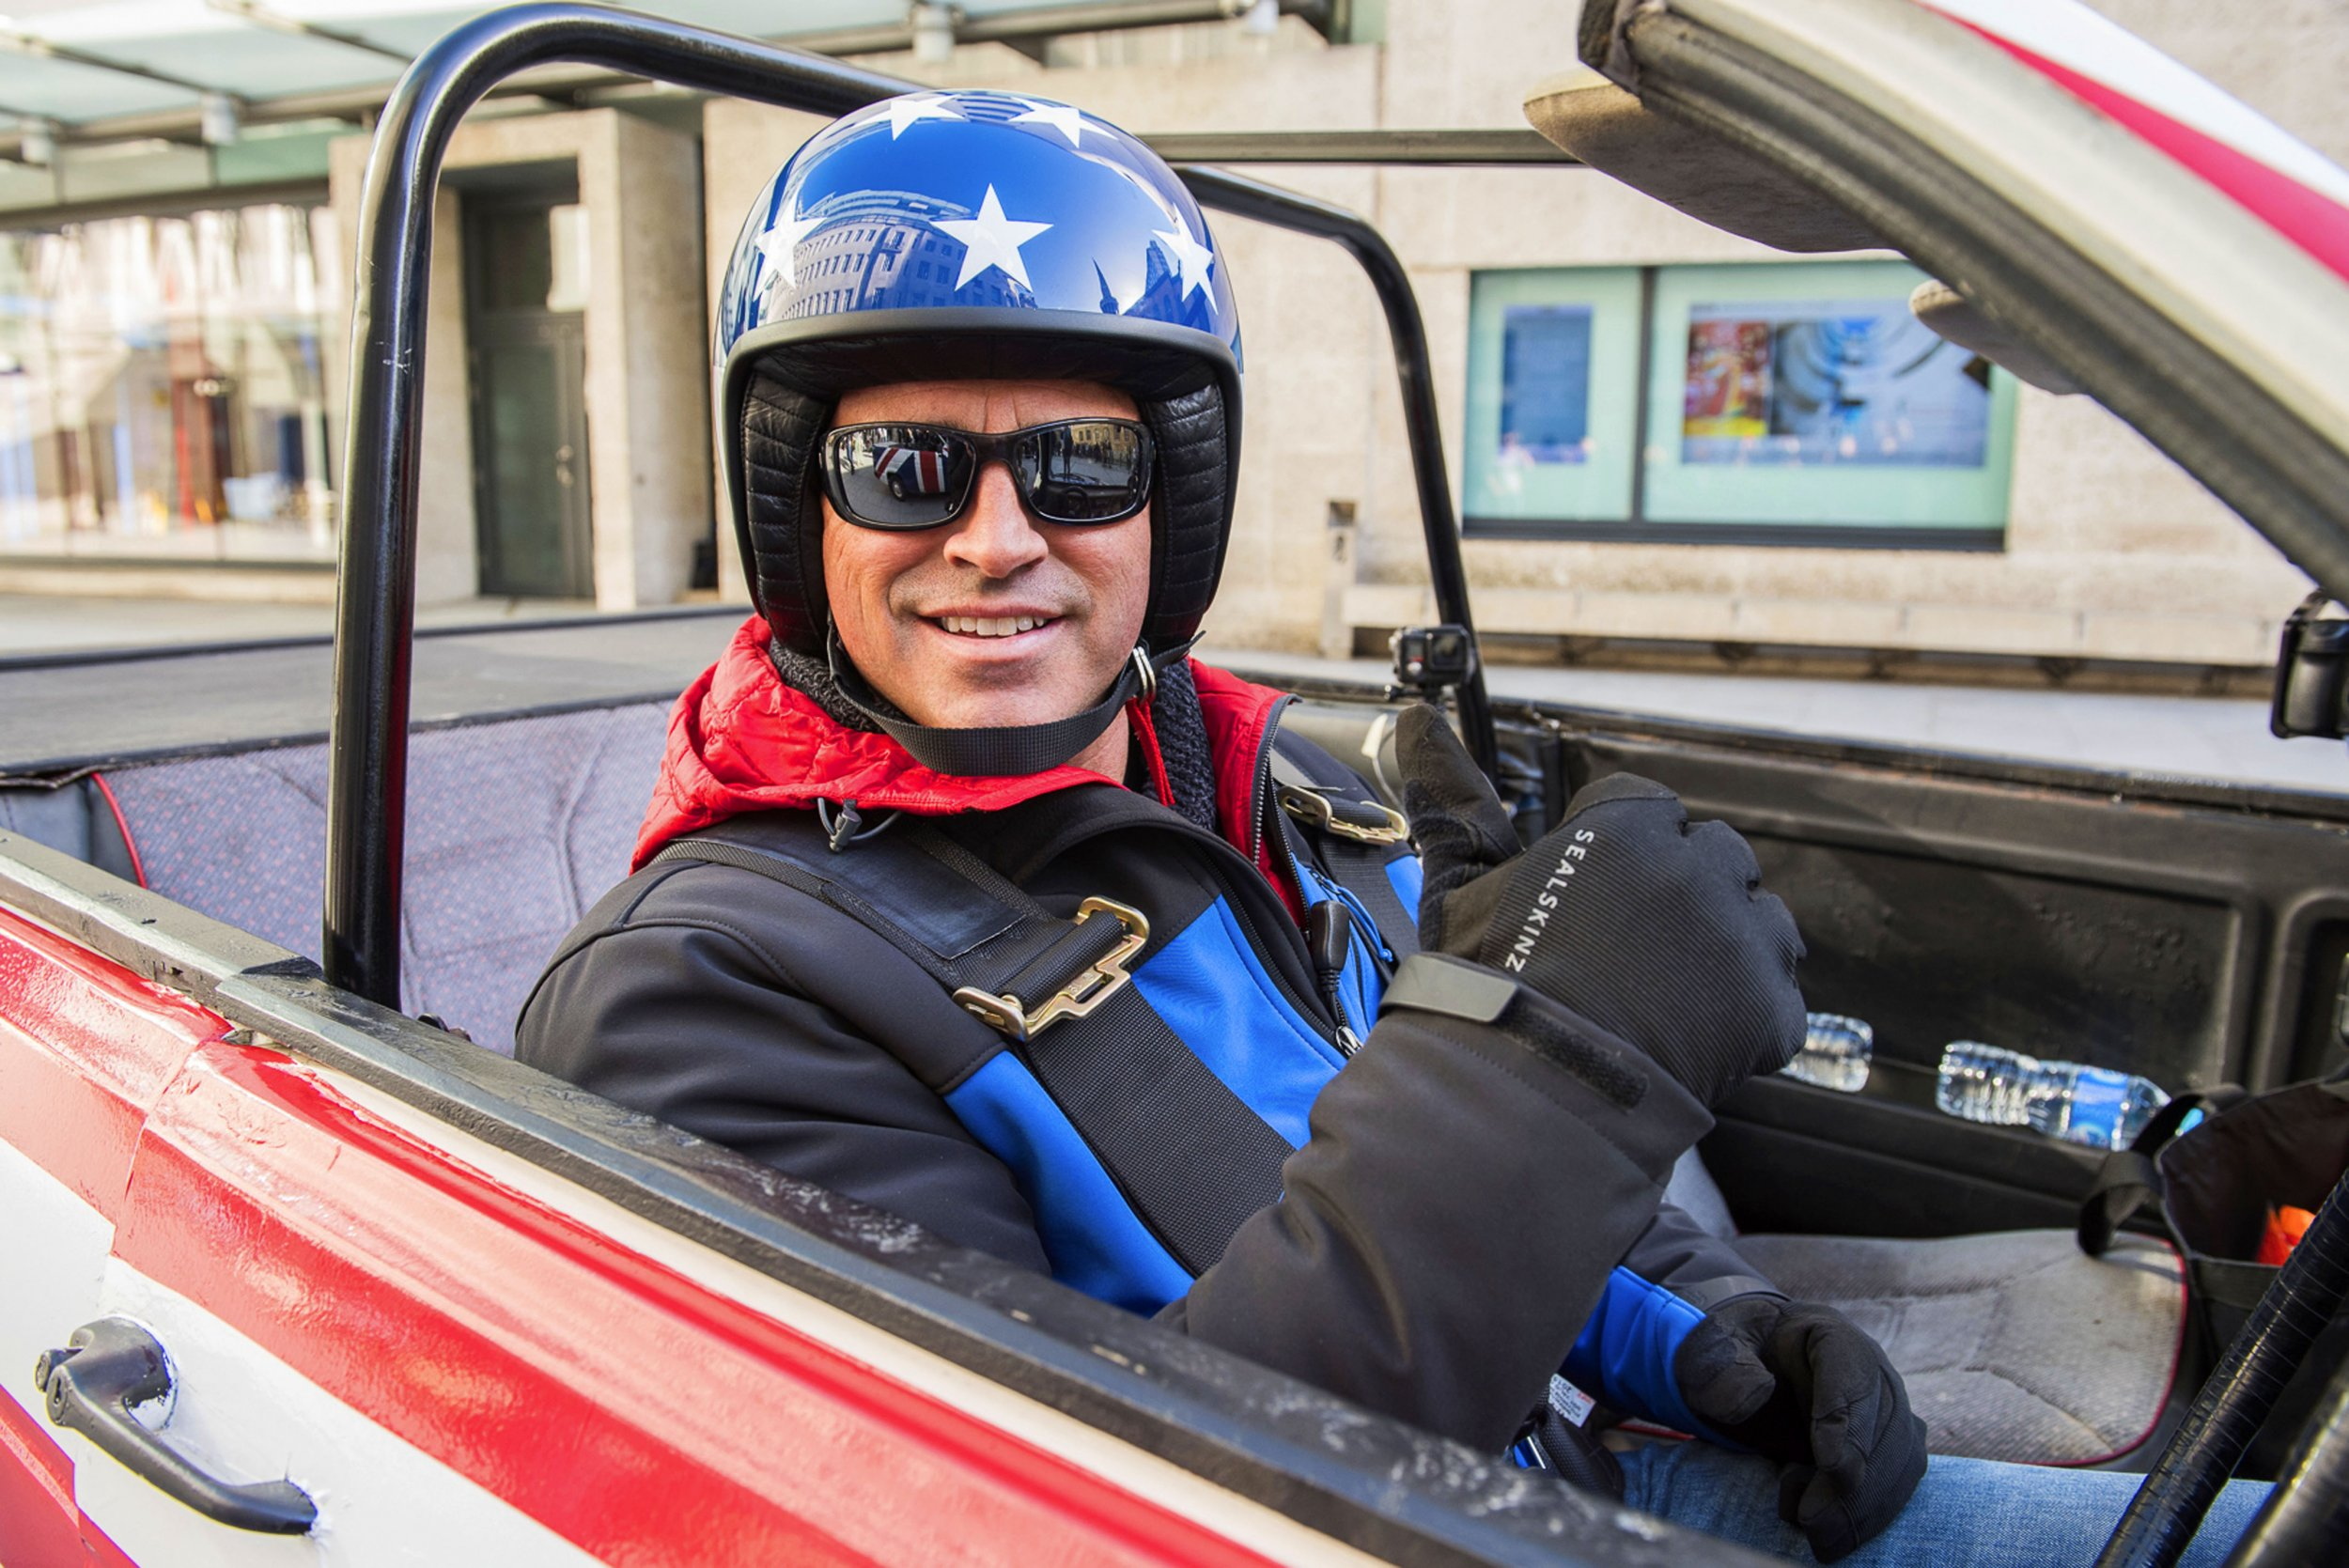 Matt LeBlanc on Top Gear